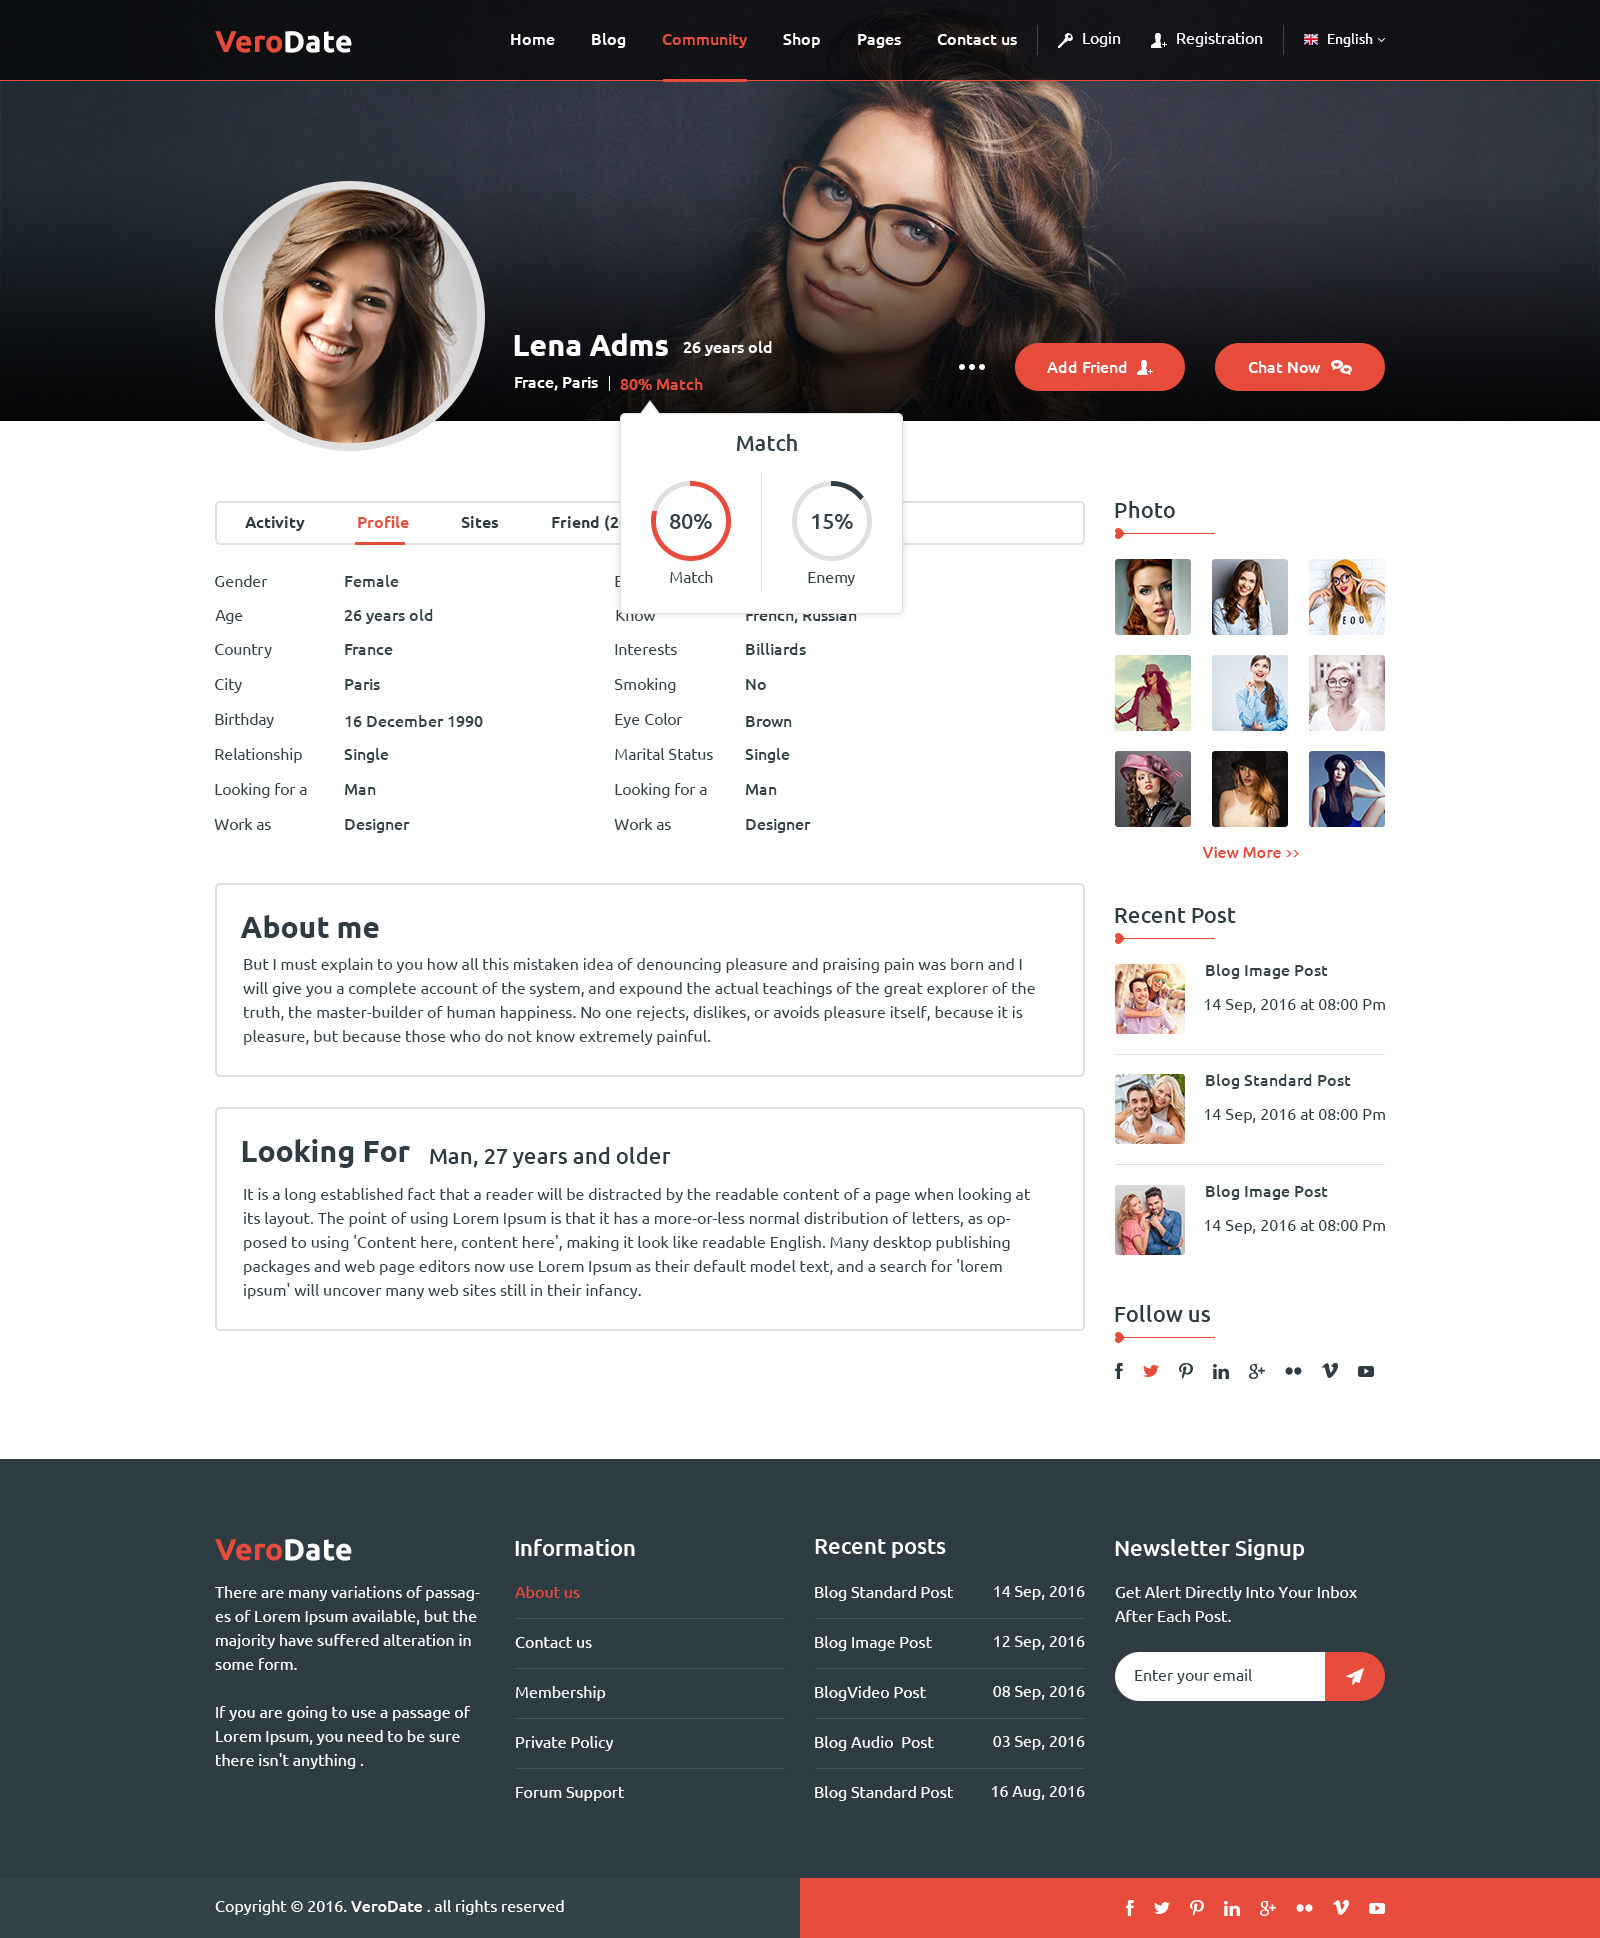 Verodate dating social network website psd template by verodate verodate dating social network website psd template maxwellsz